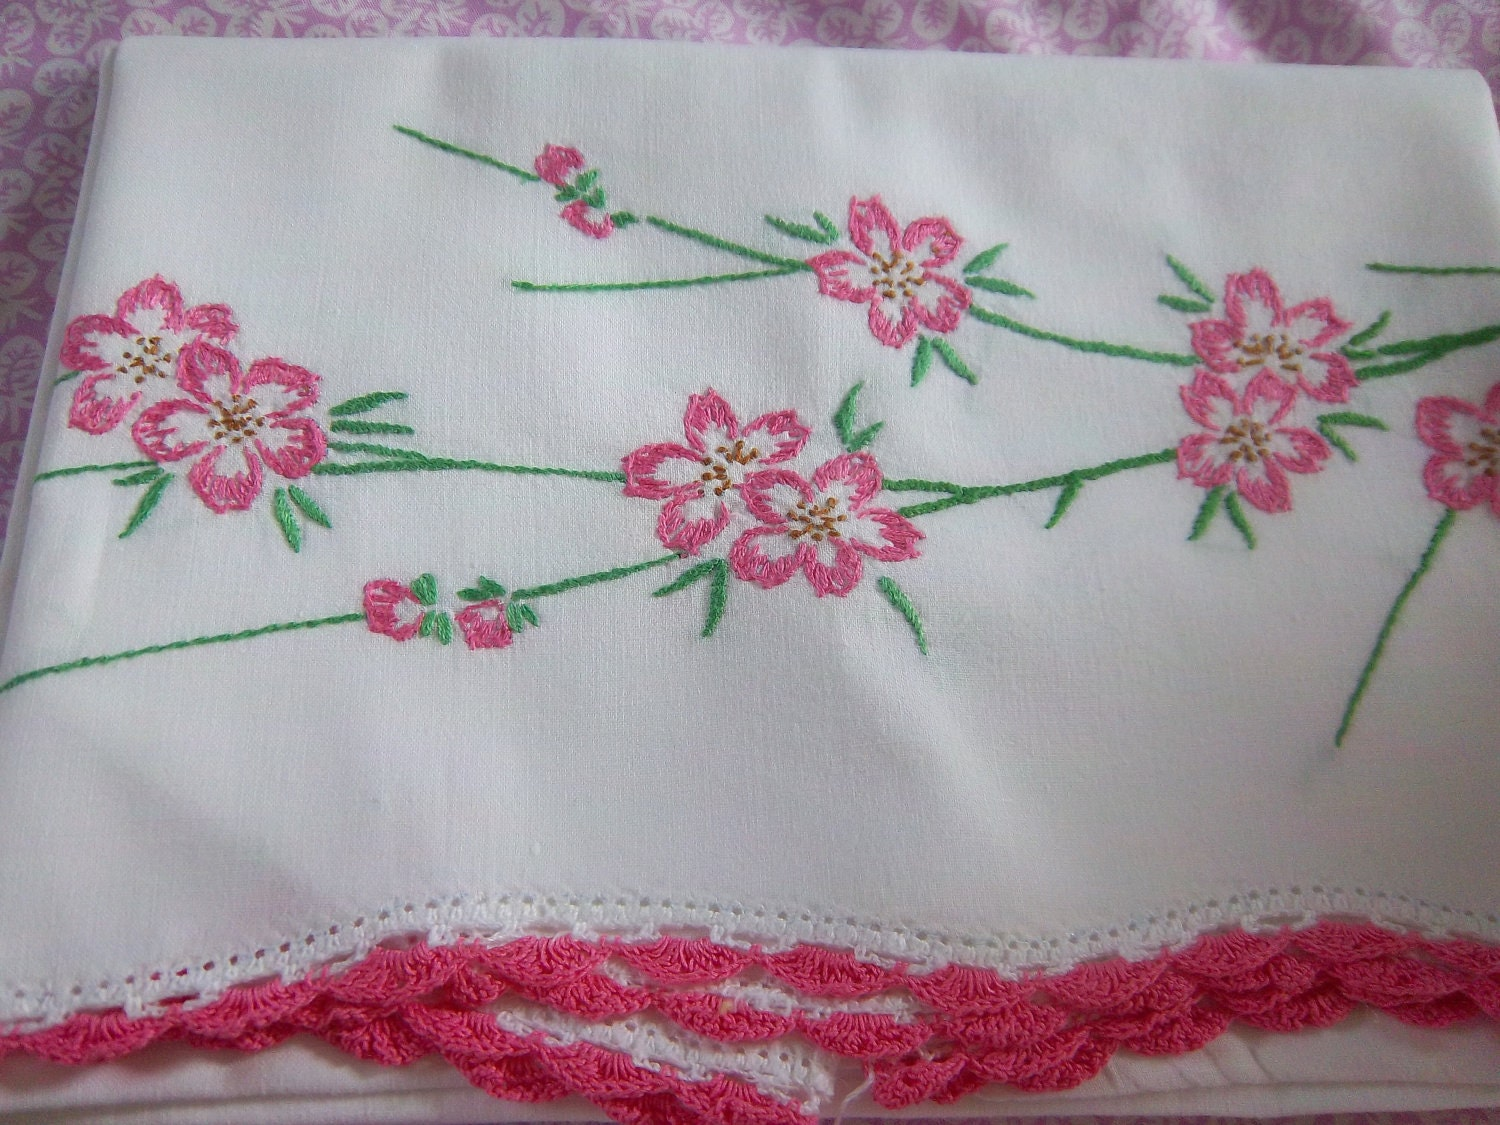 King Size Pillowcase Embroidery Kits Free Embroidery